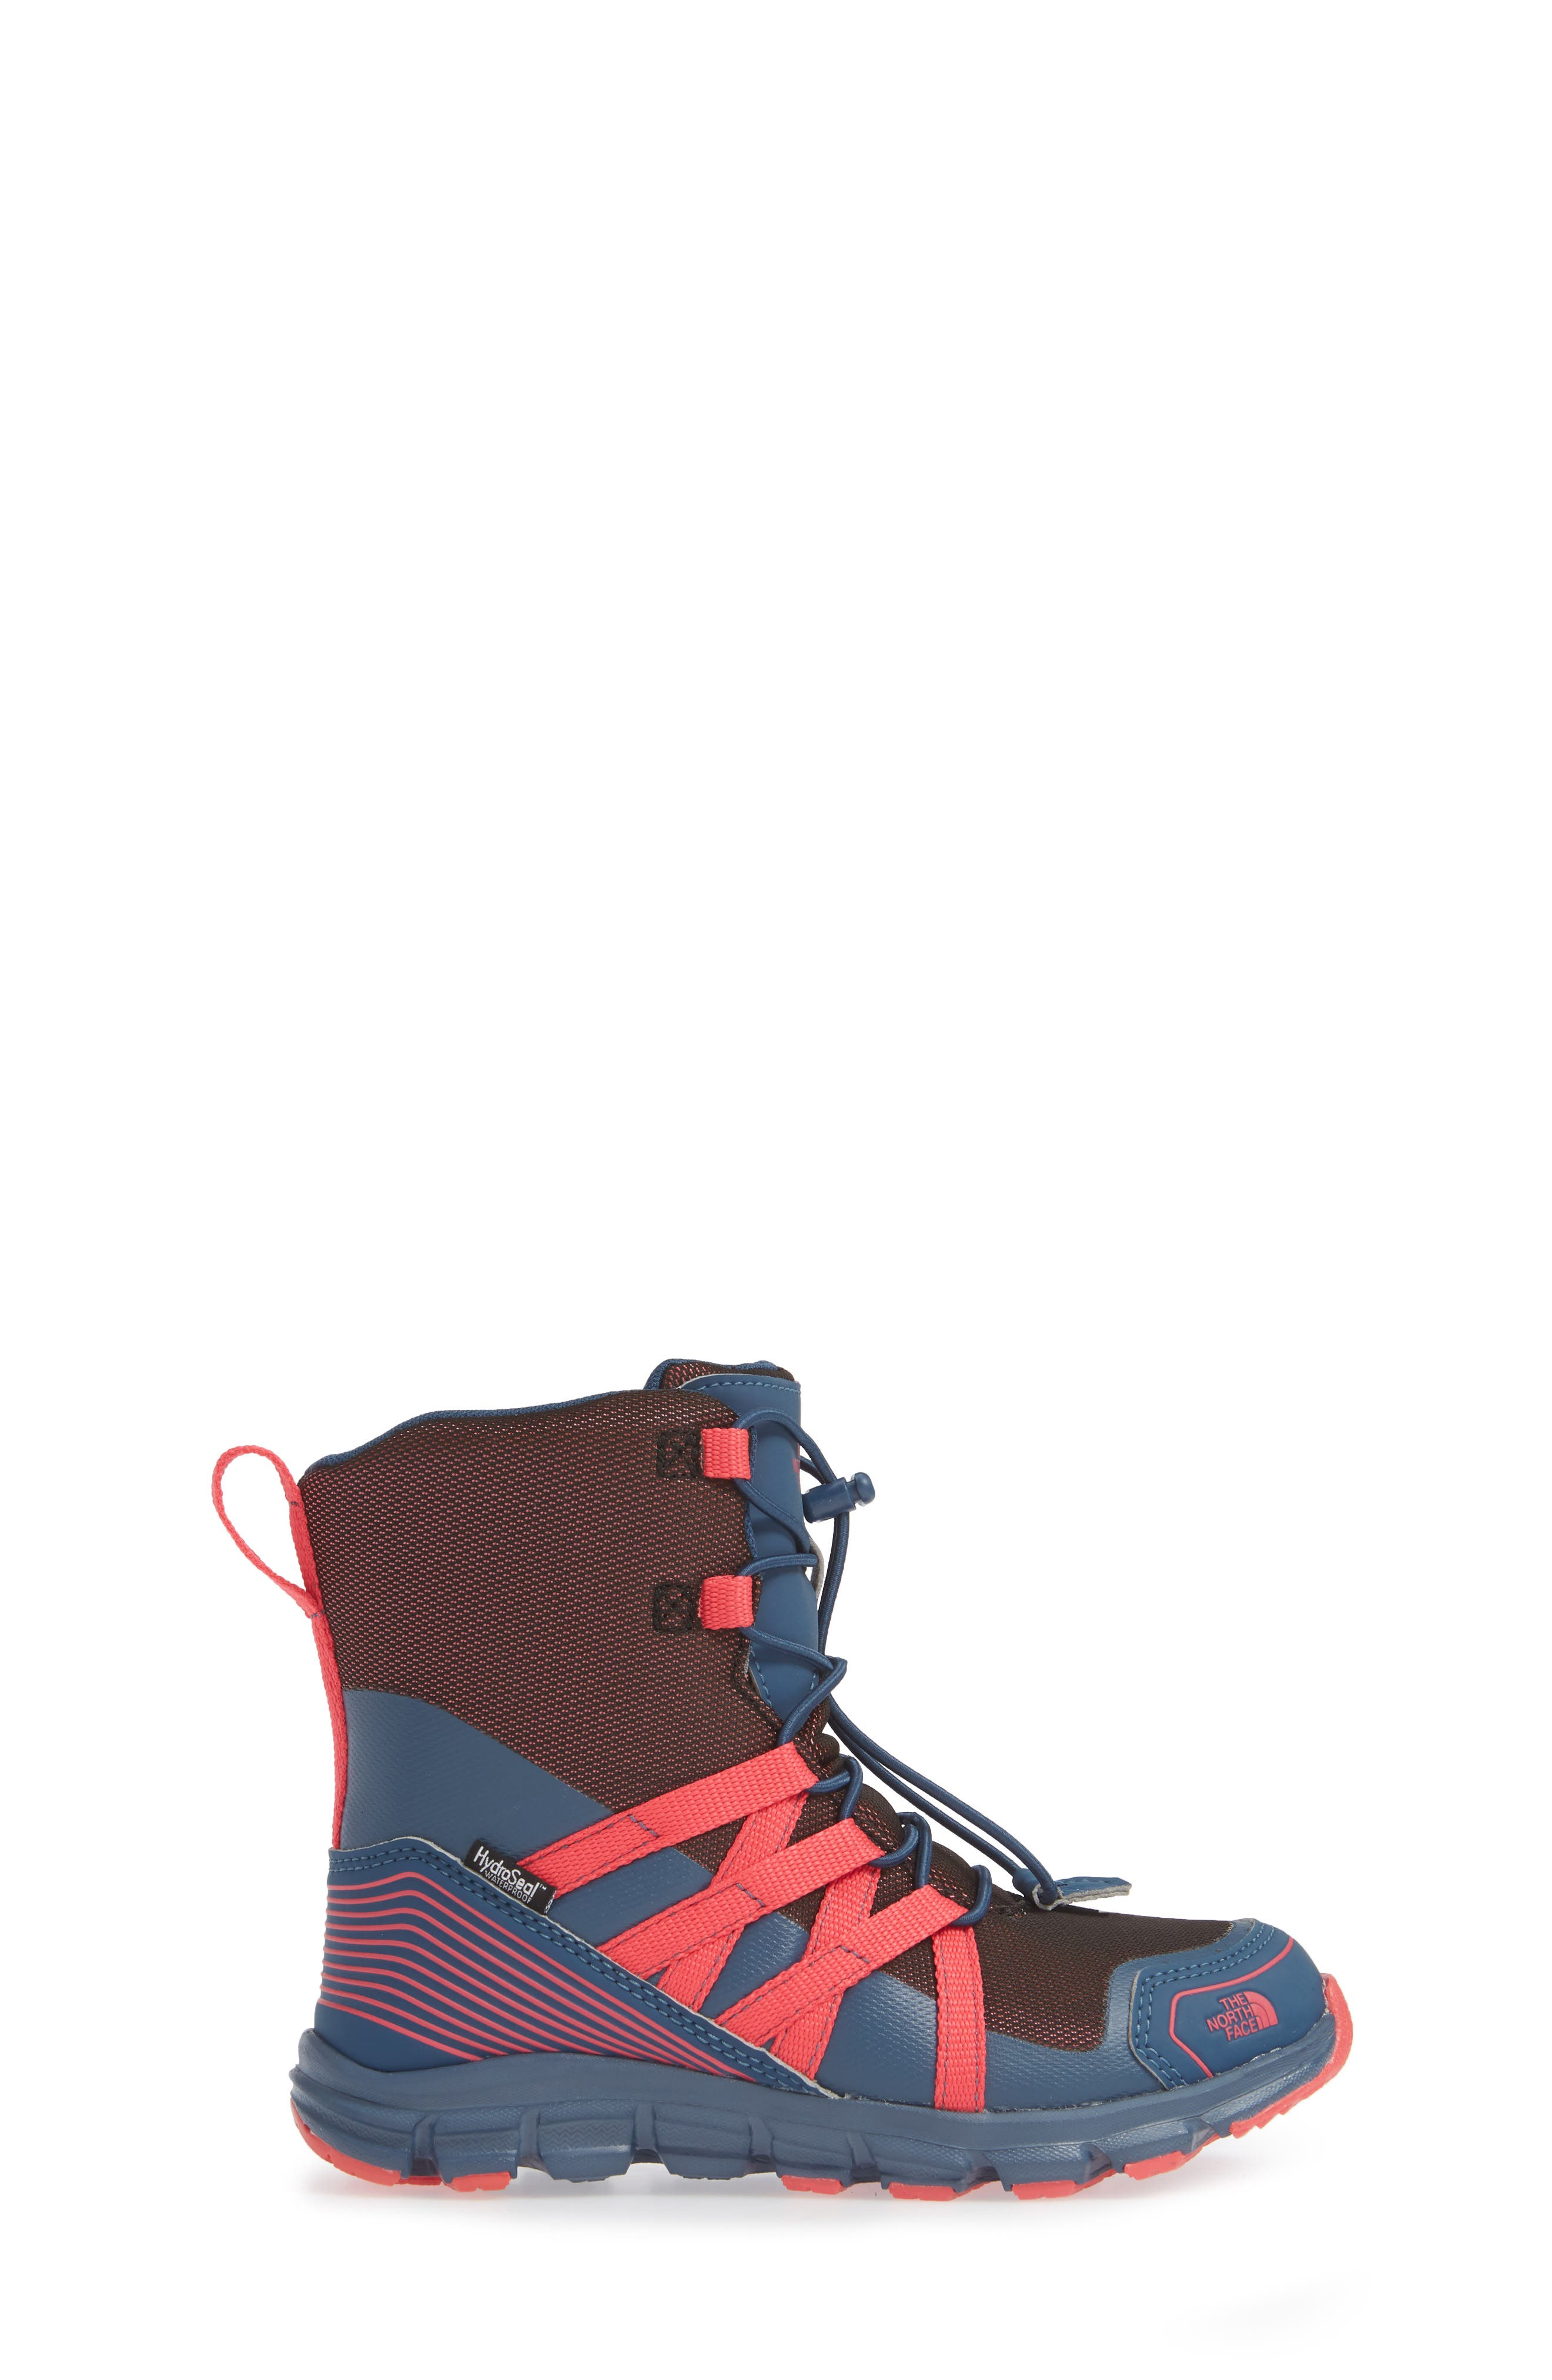 Junior Winter Sneaker Waterproof Insulated Boot,                             Alternate thumbnail 3, color,                             BLUE WING TEAL/ ATOMIC PINK